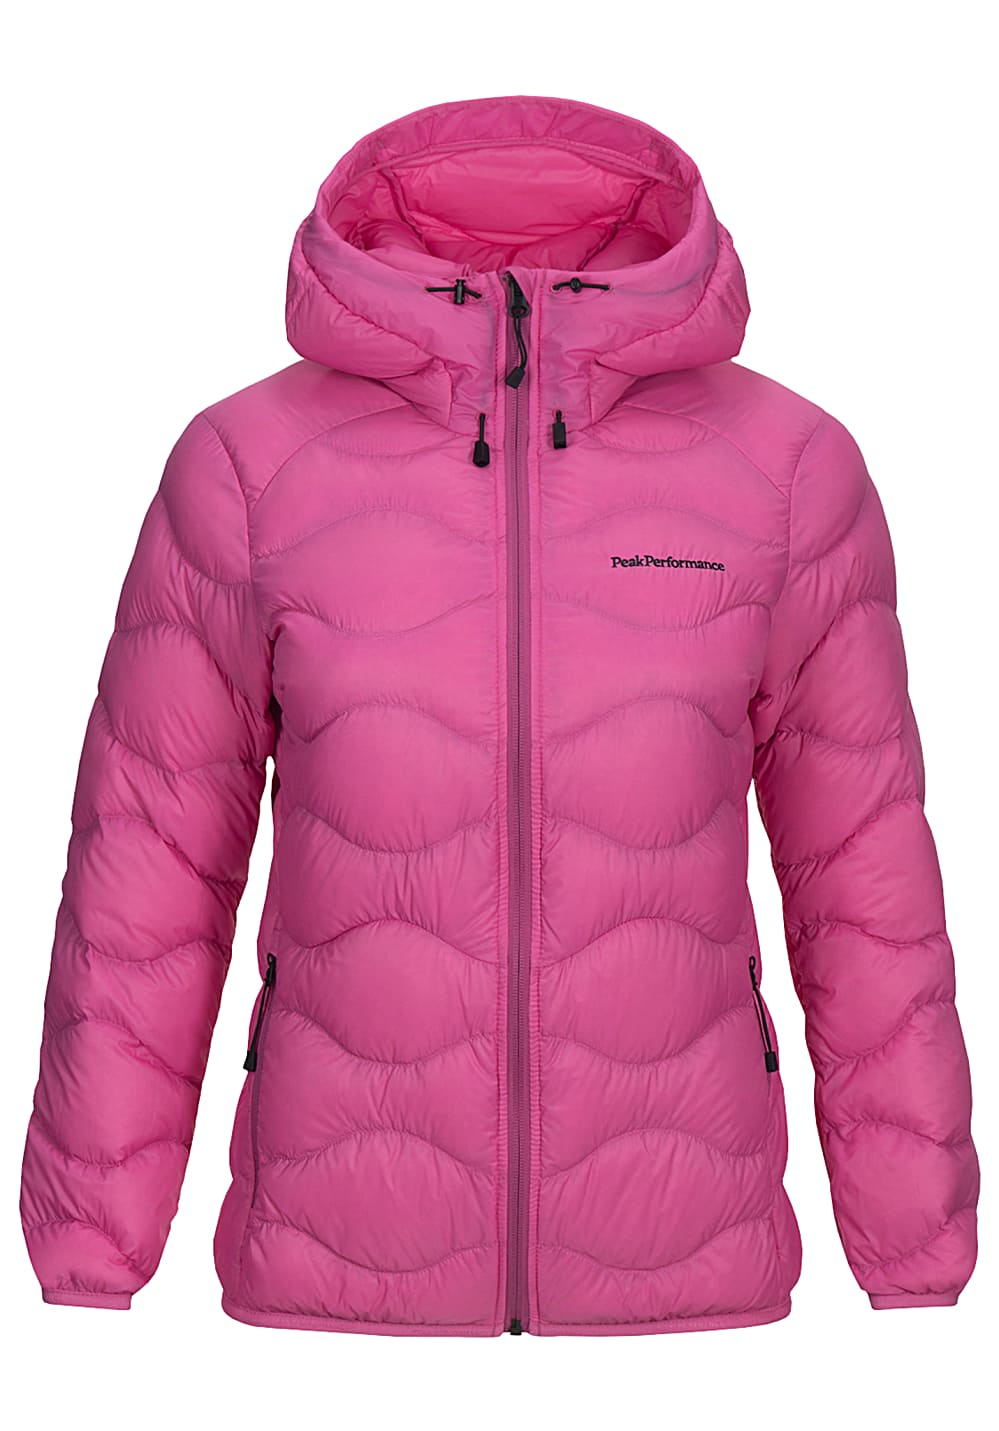 PEAK PERFORMANCE Helium Outdoorjacke für Damen Pink